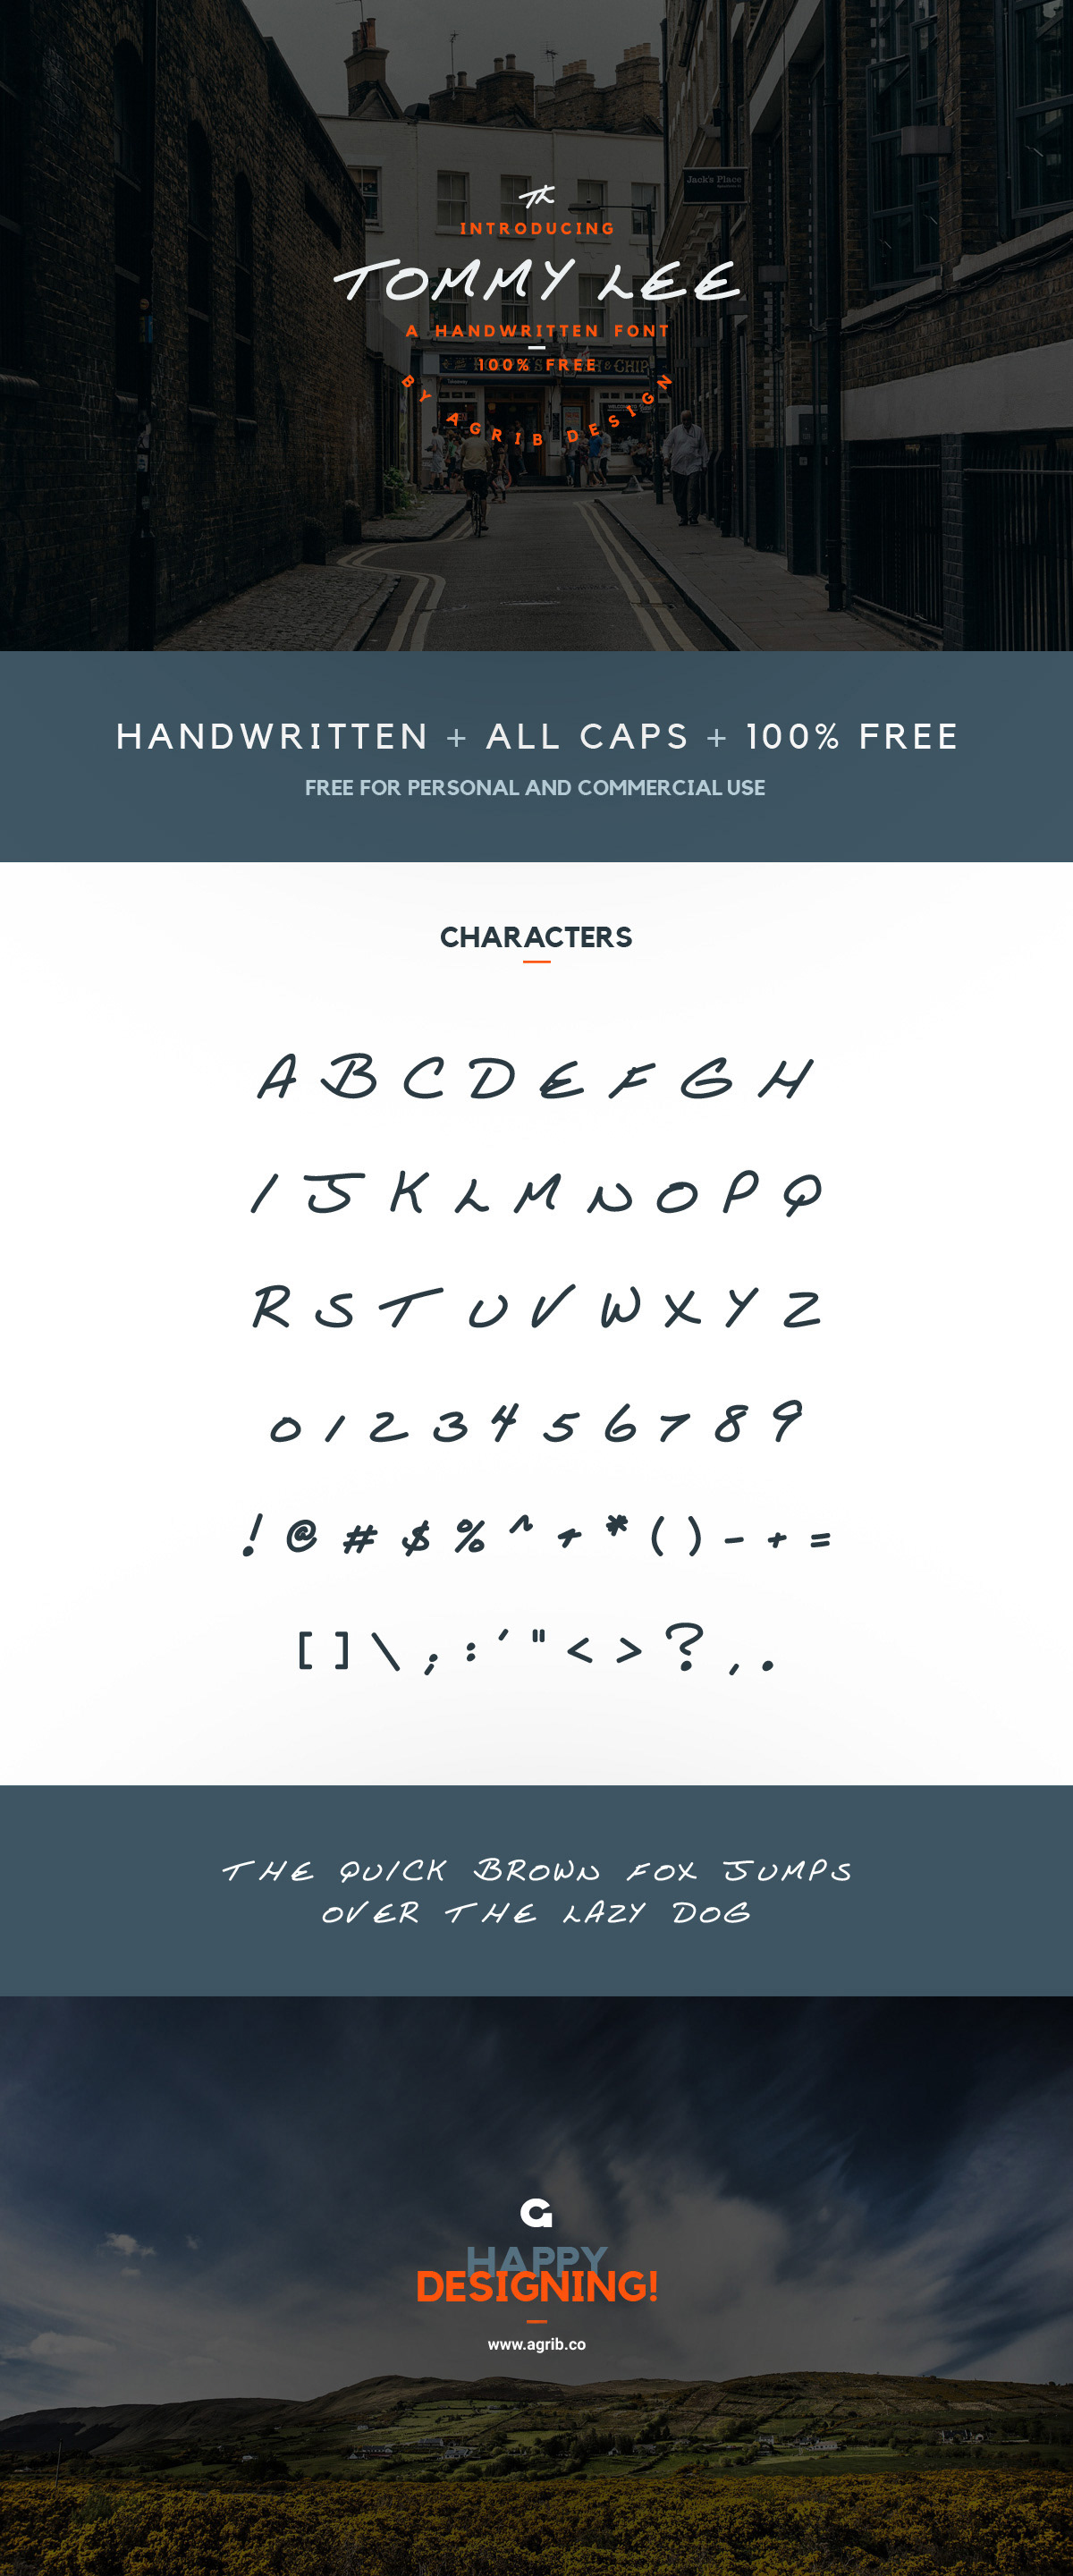 Free font font free Typeface type free typeface download free download graphic freebie new handwritten type design Tommy Lee Tommy Lee font